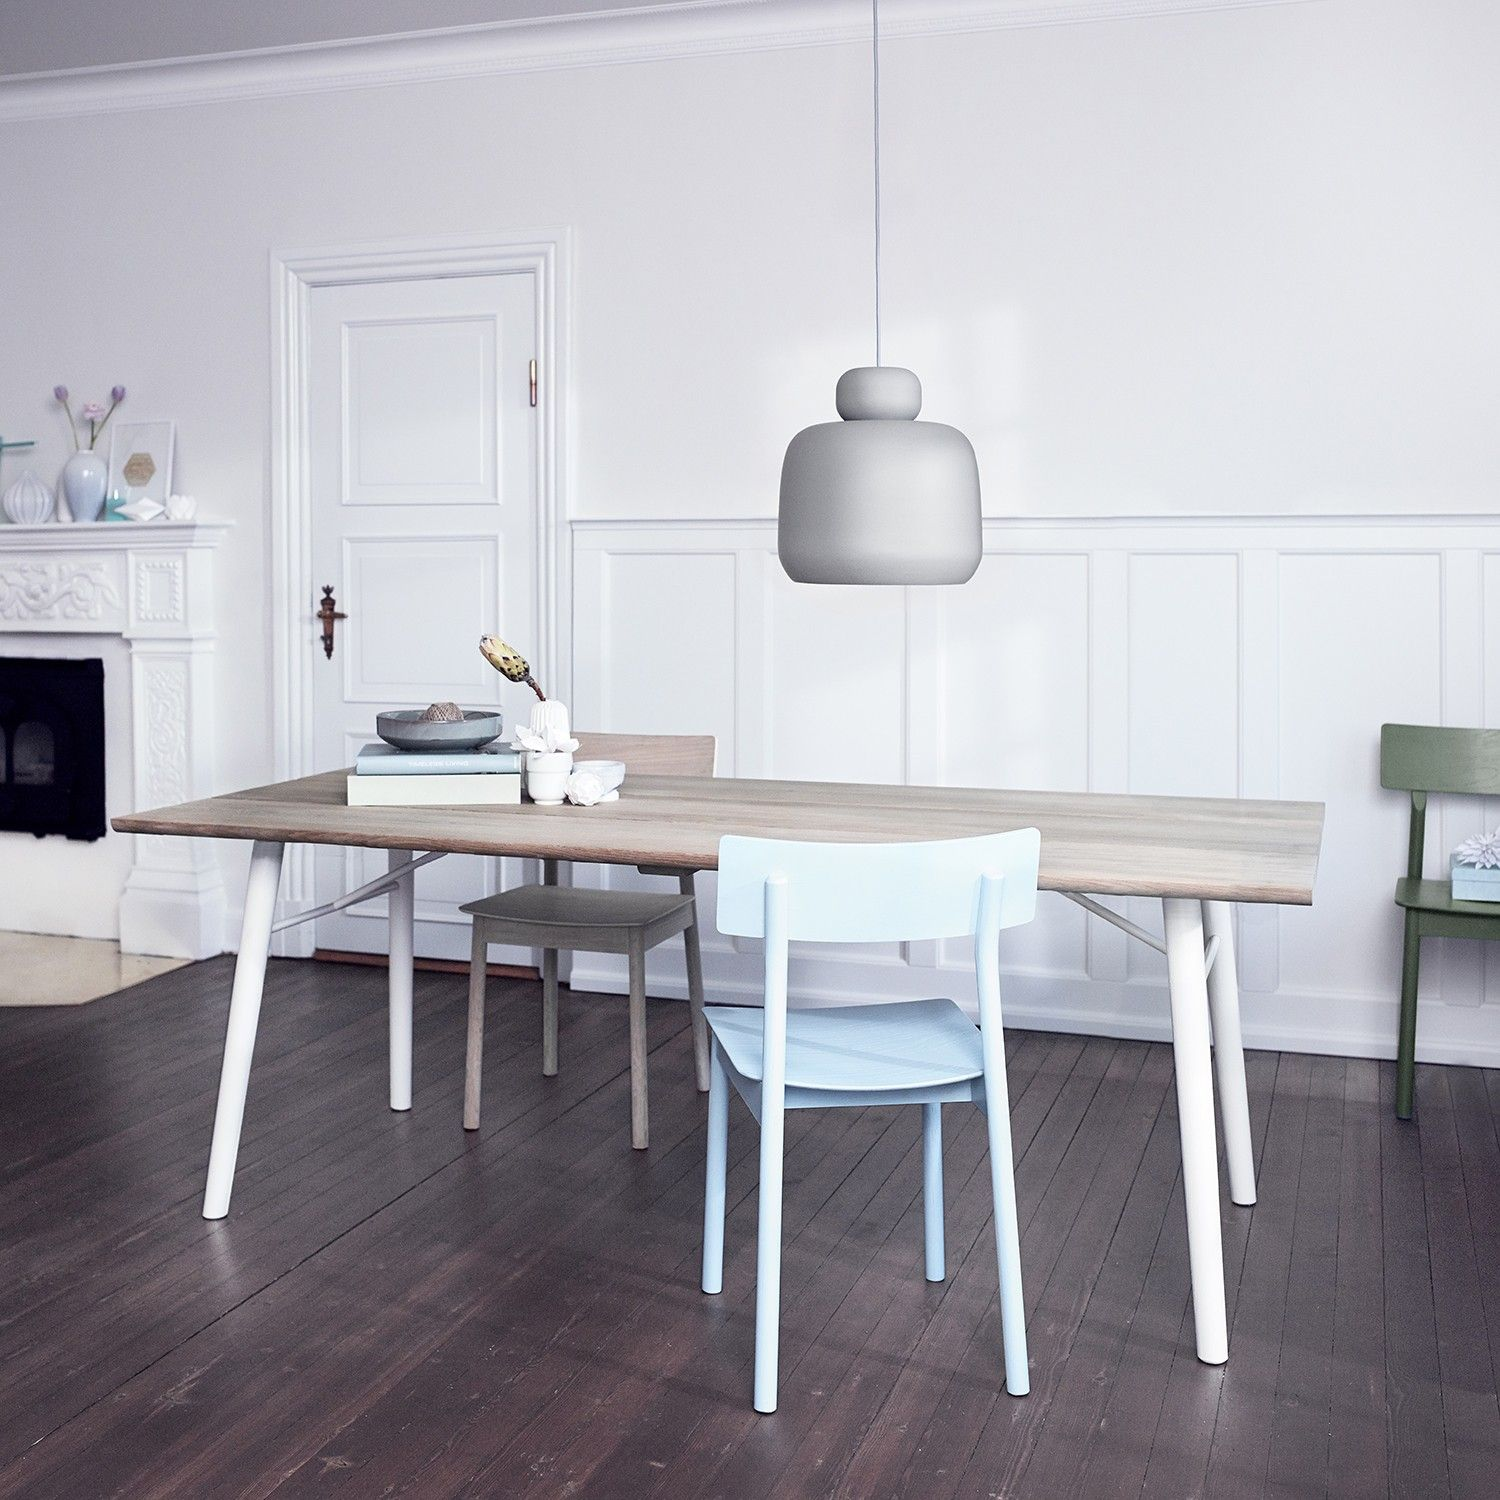 The Split Dining Table is a Scandinavian interpretation of a plank table. http://www.yliving.com/woud-split-dining-table.html